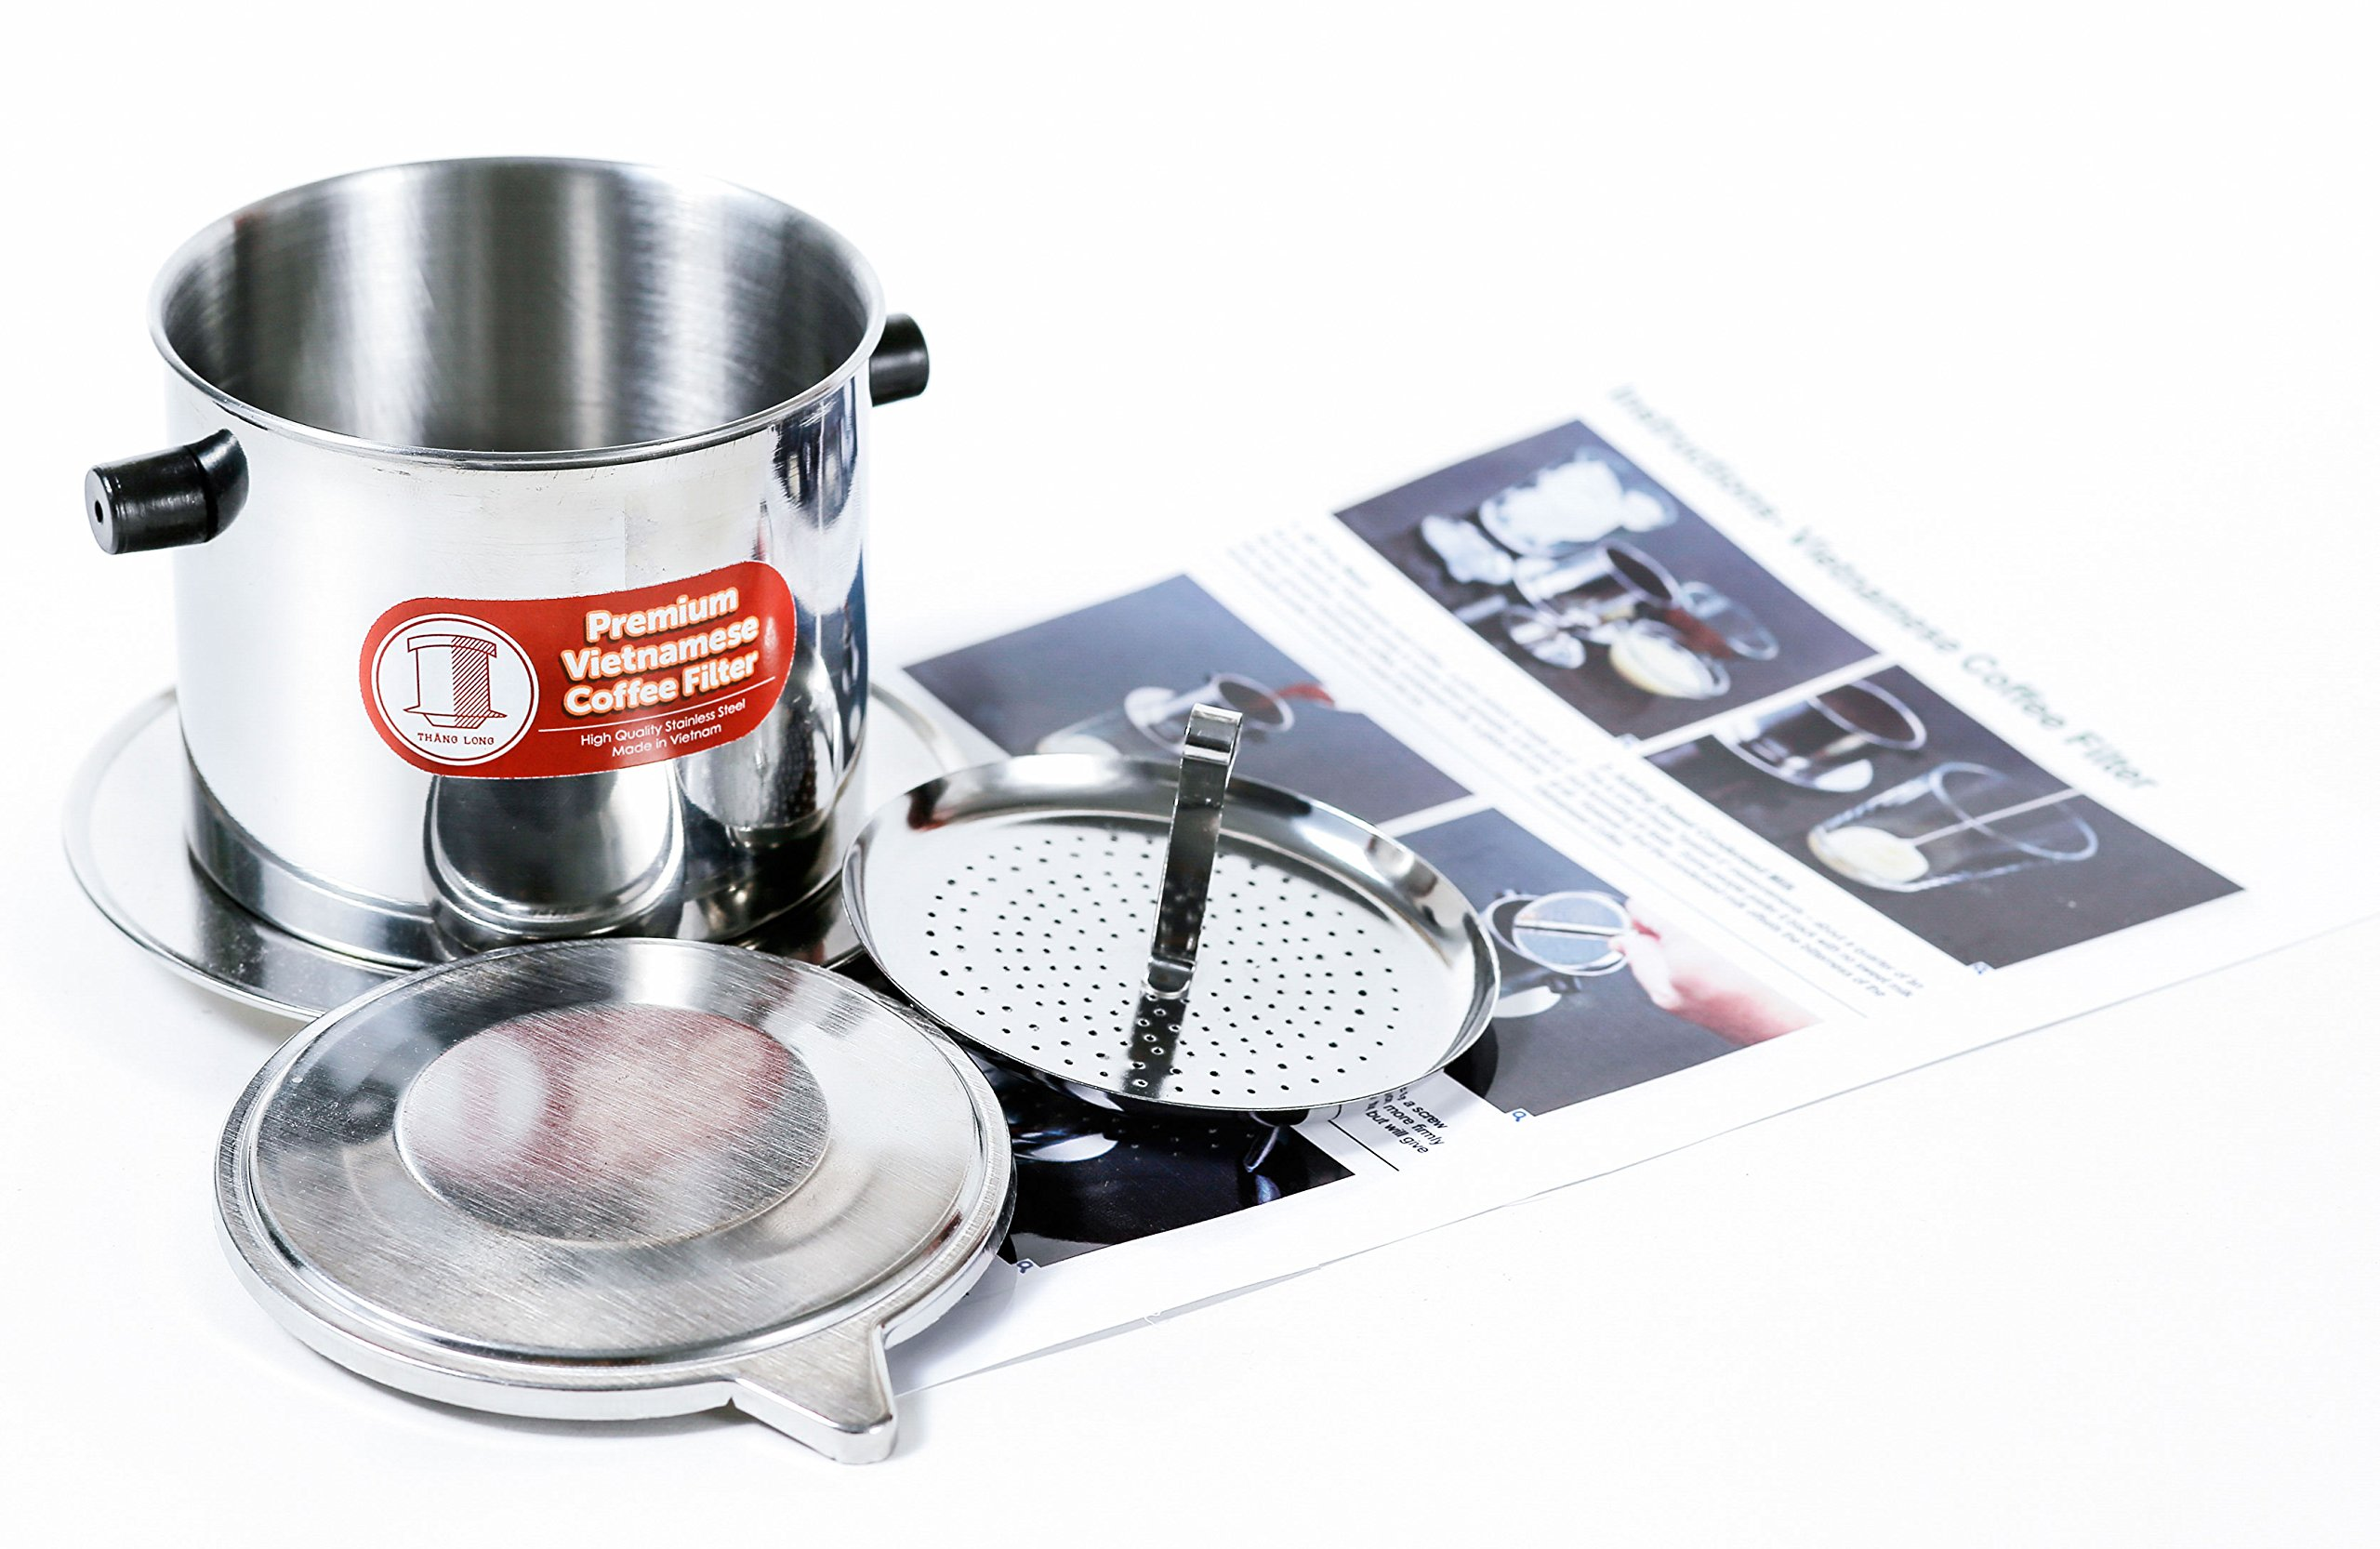 Vietnamese Dripper Coffee Machine Filter. Suitable for Trung Nguyen Coffee- Gravity Insert, Extra large (15 oz) by Thang Long